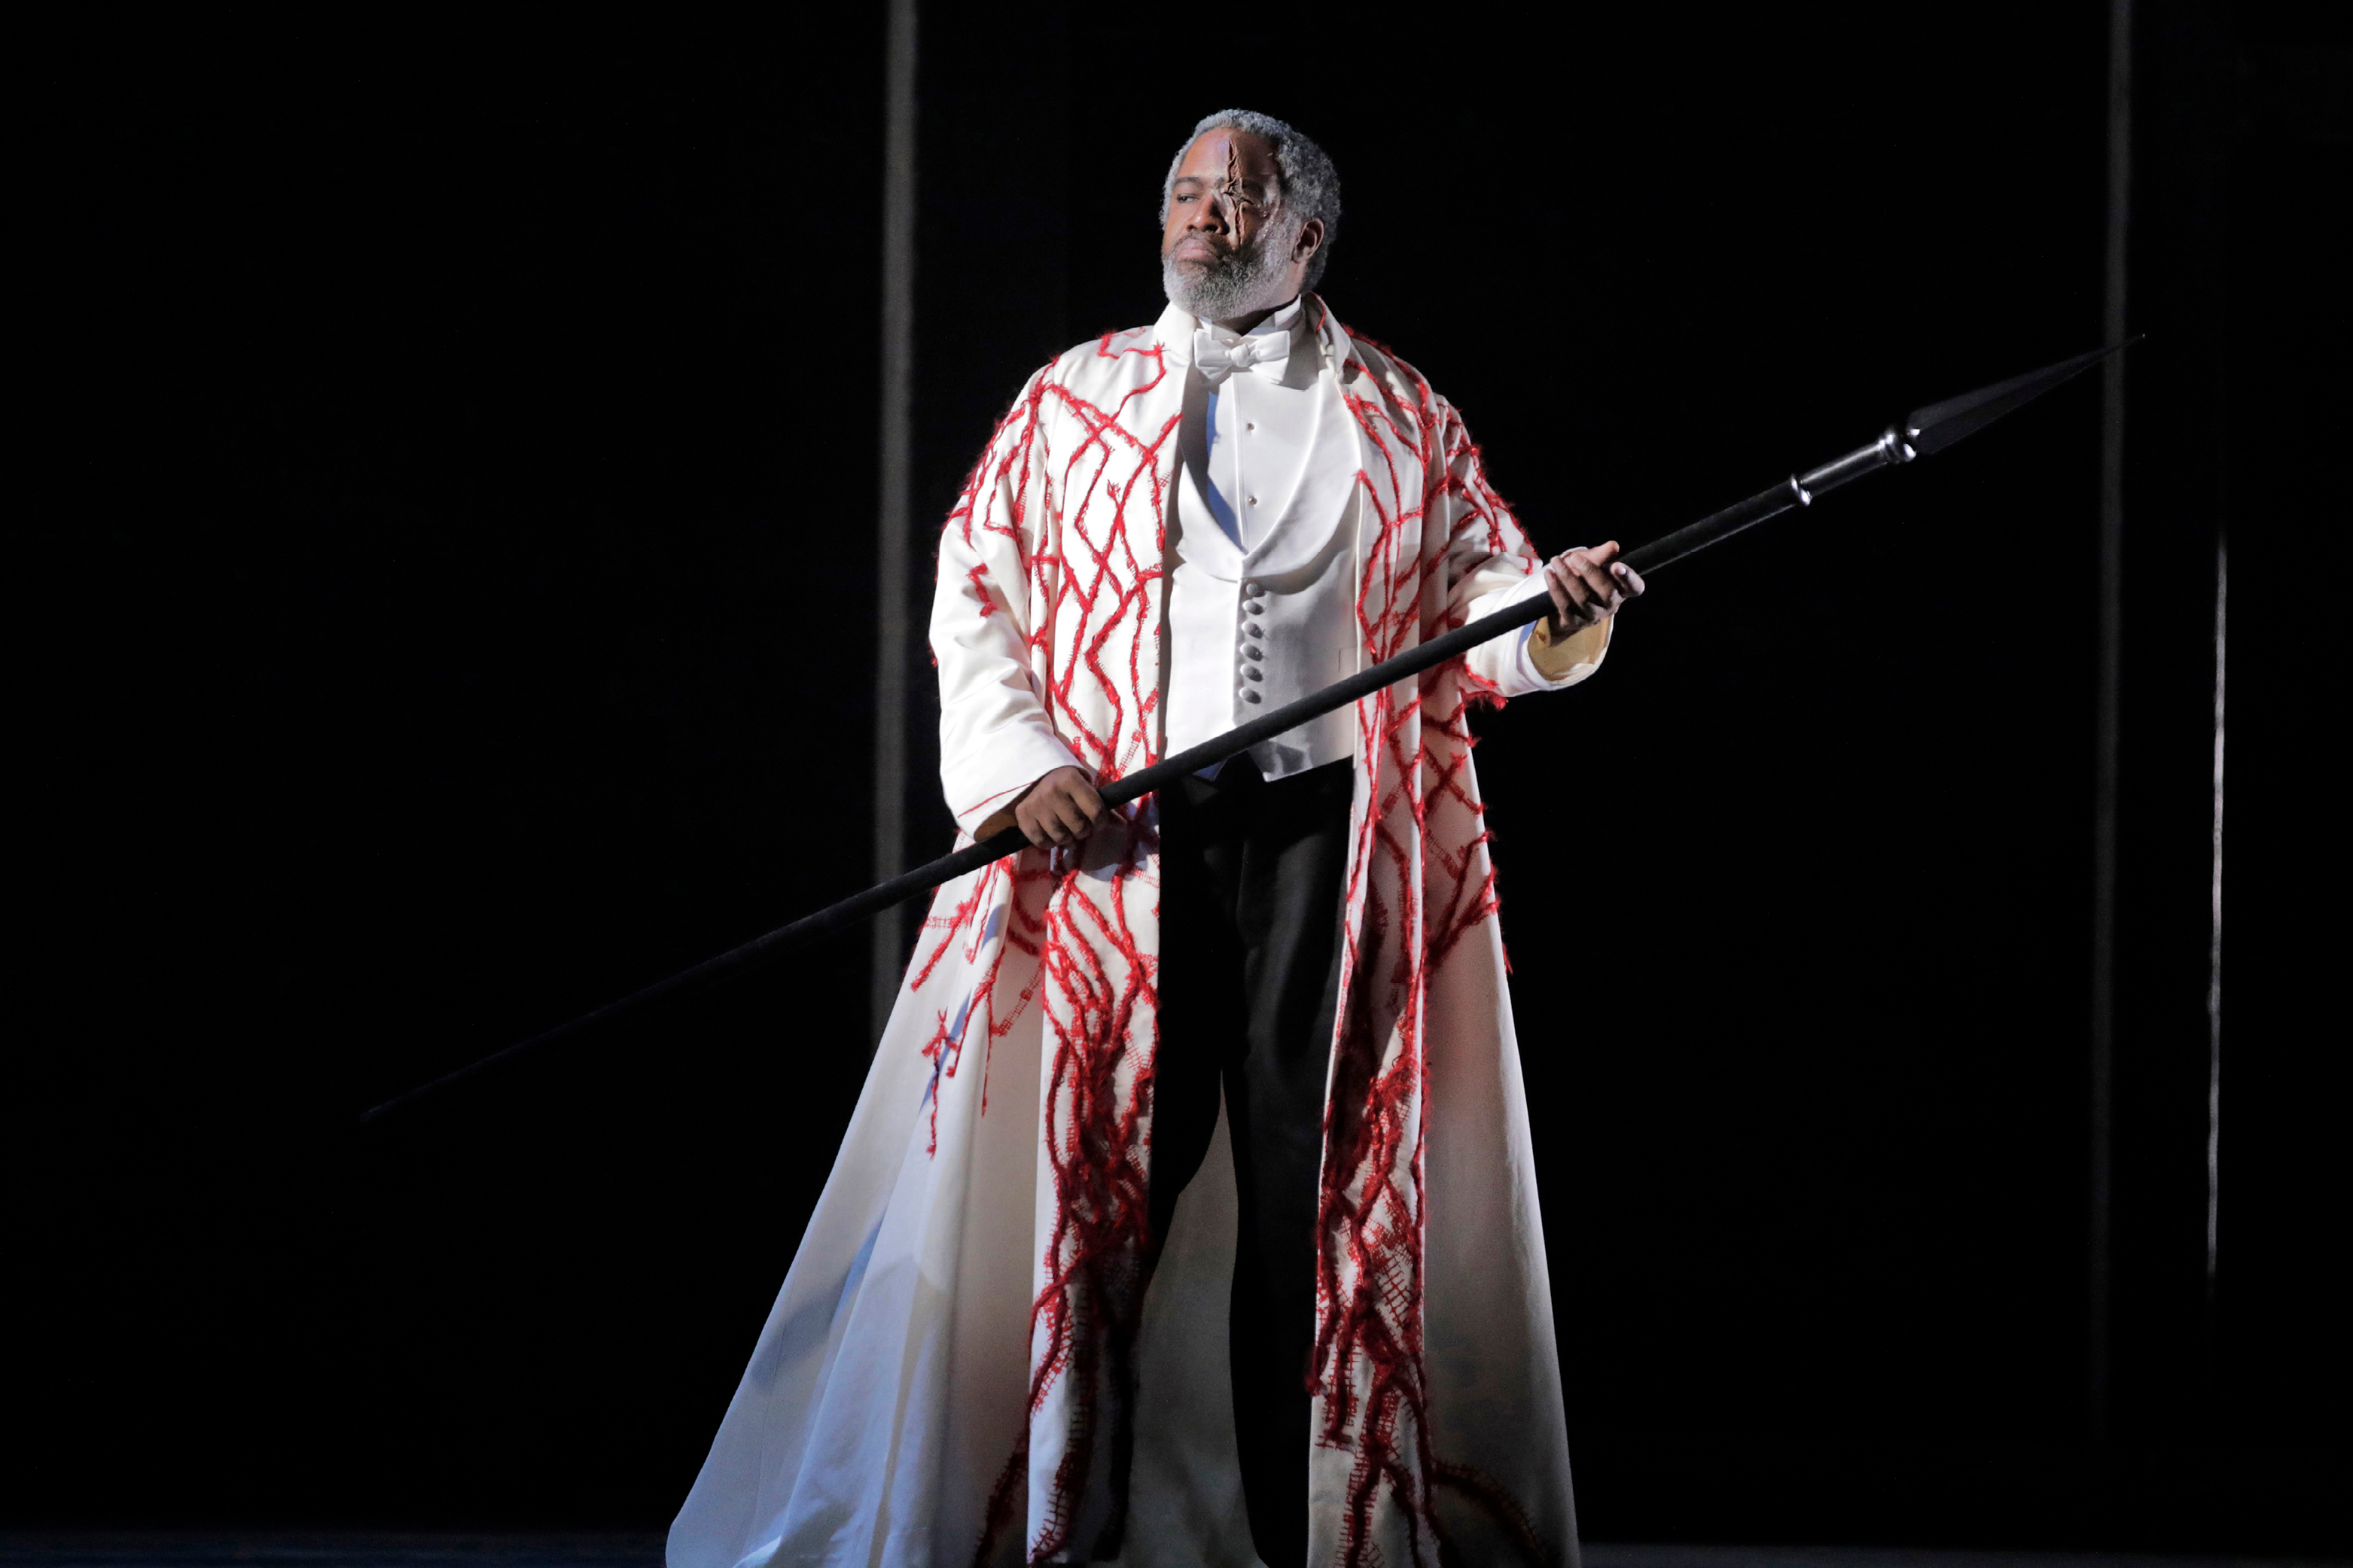 Eric Owens as Wotan on stage holding spear